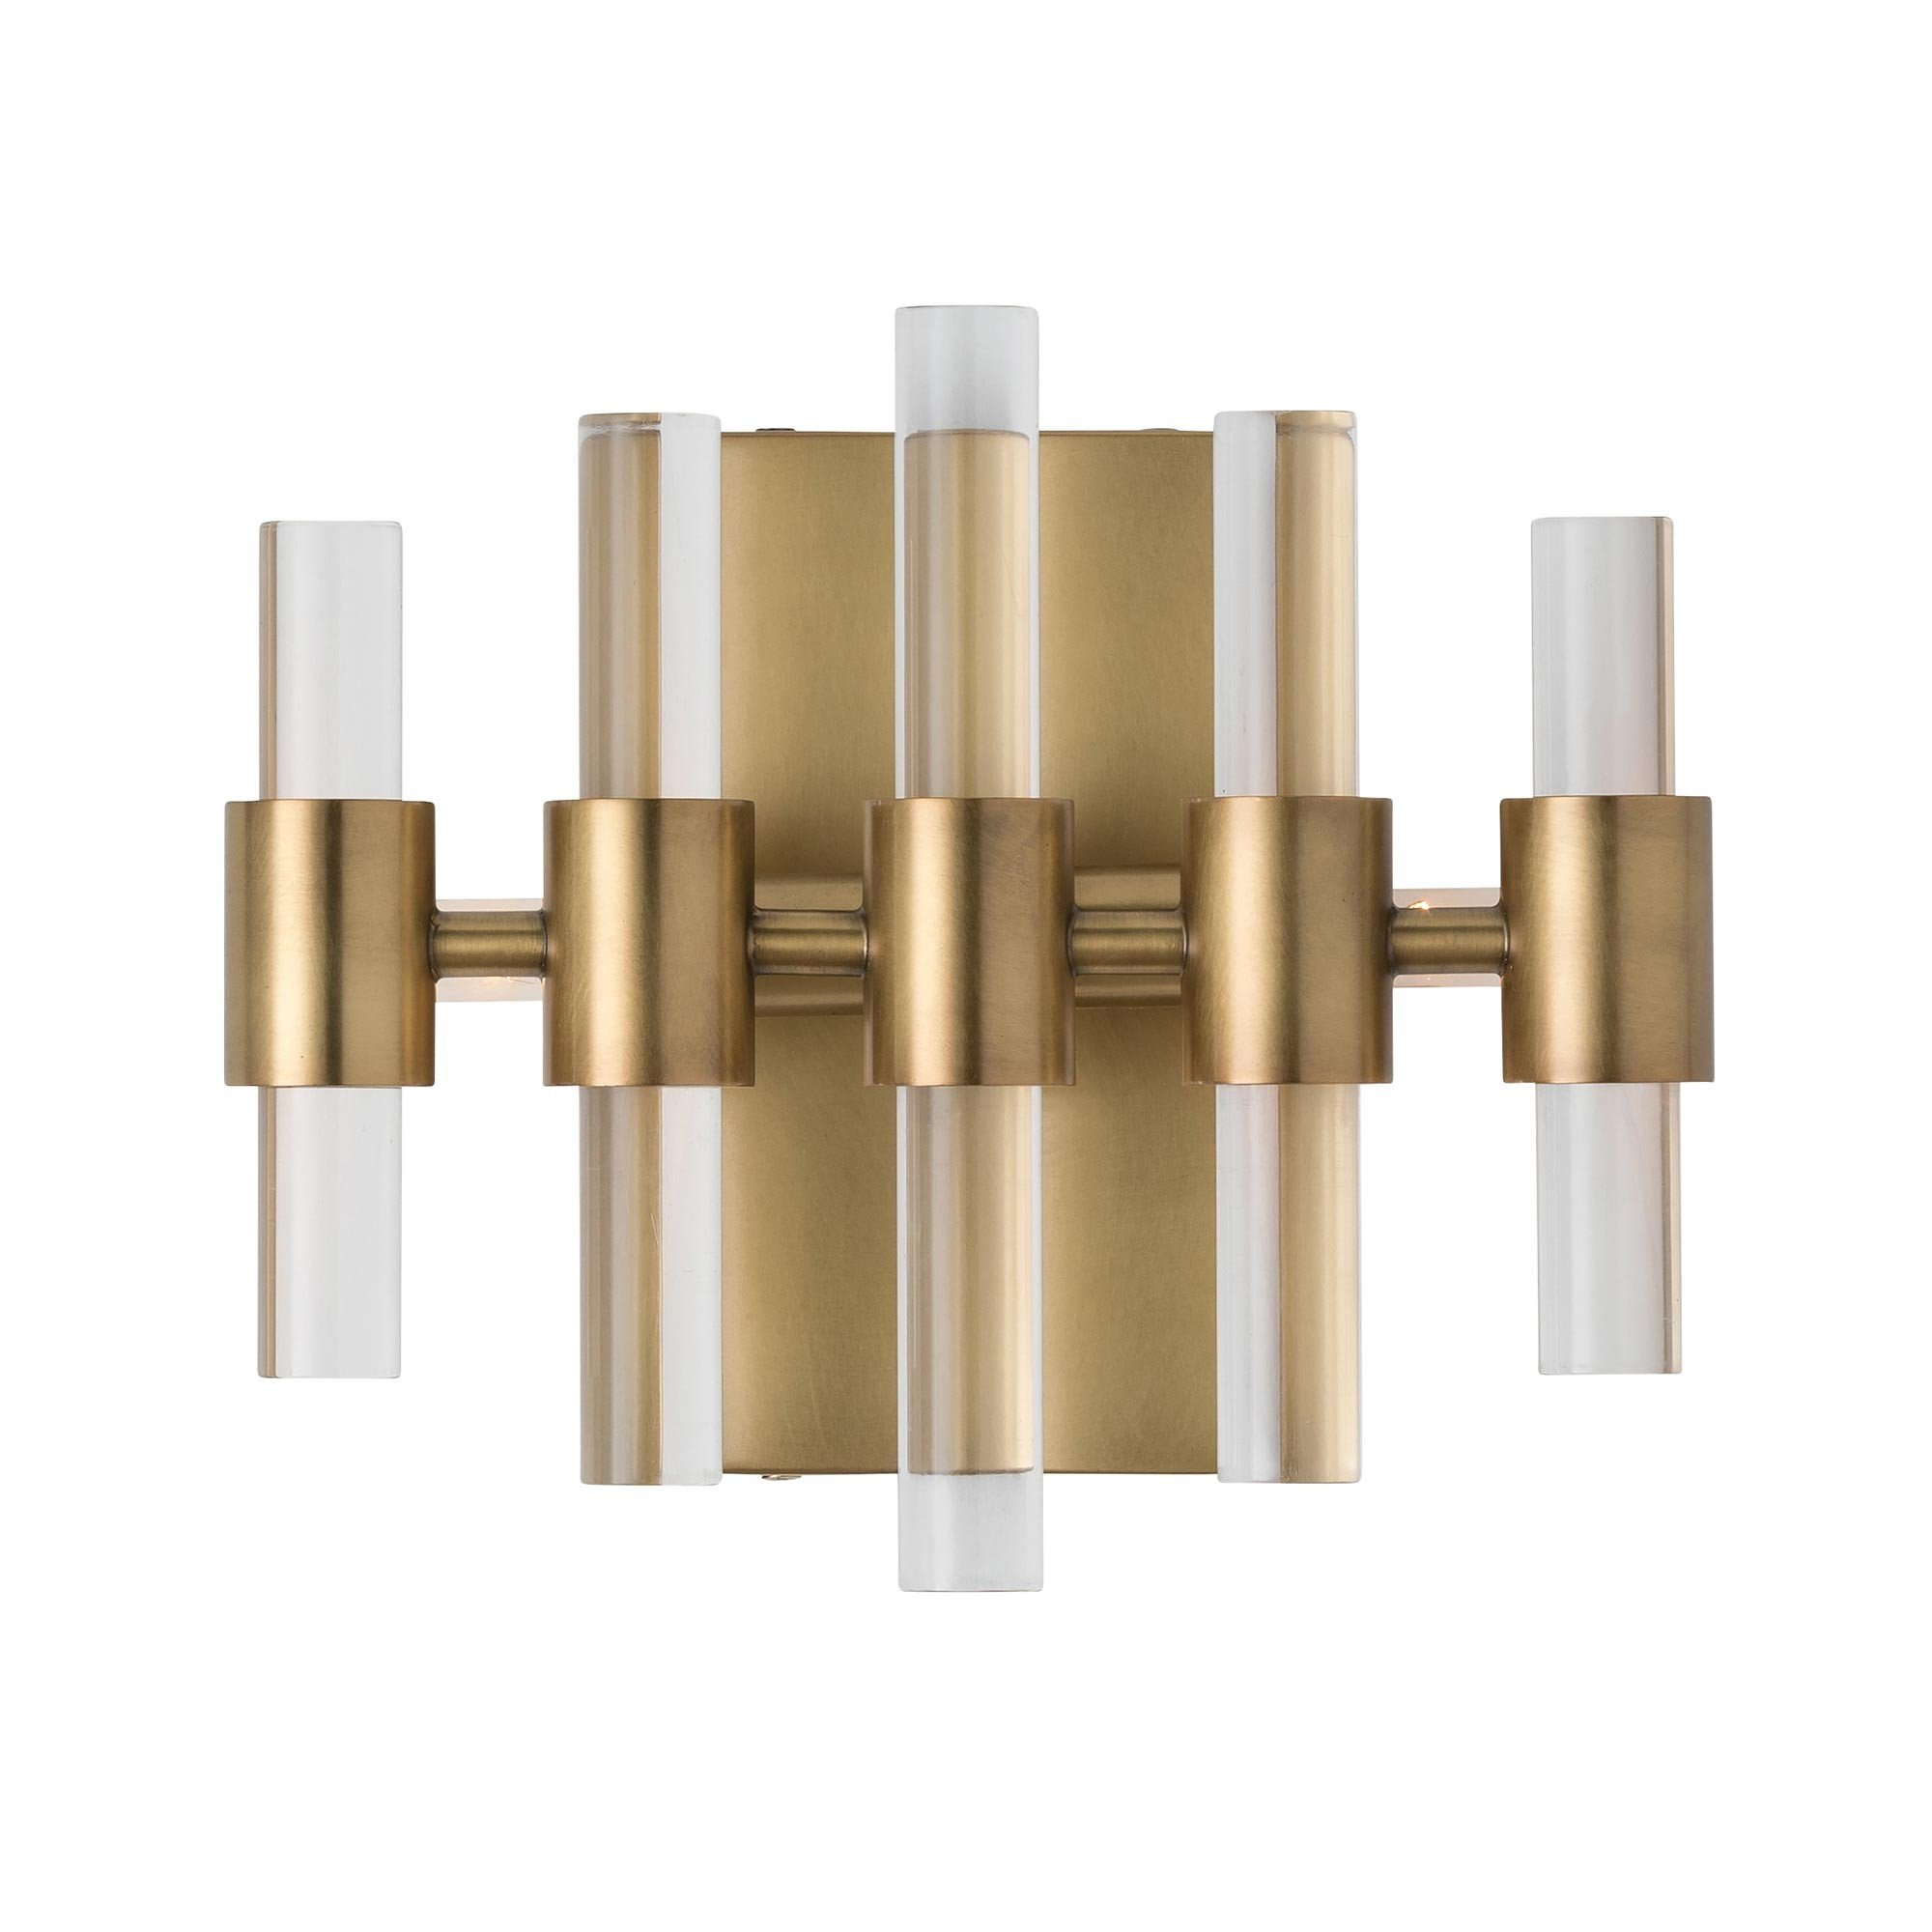 Acco Sconce